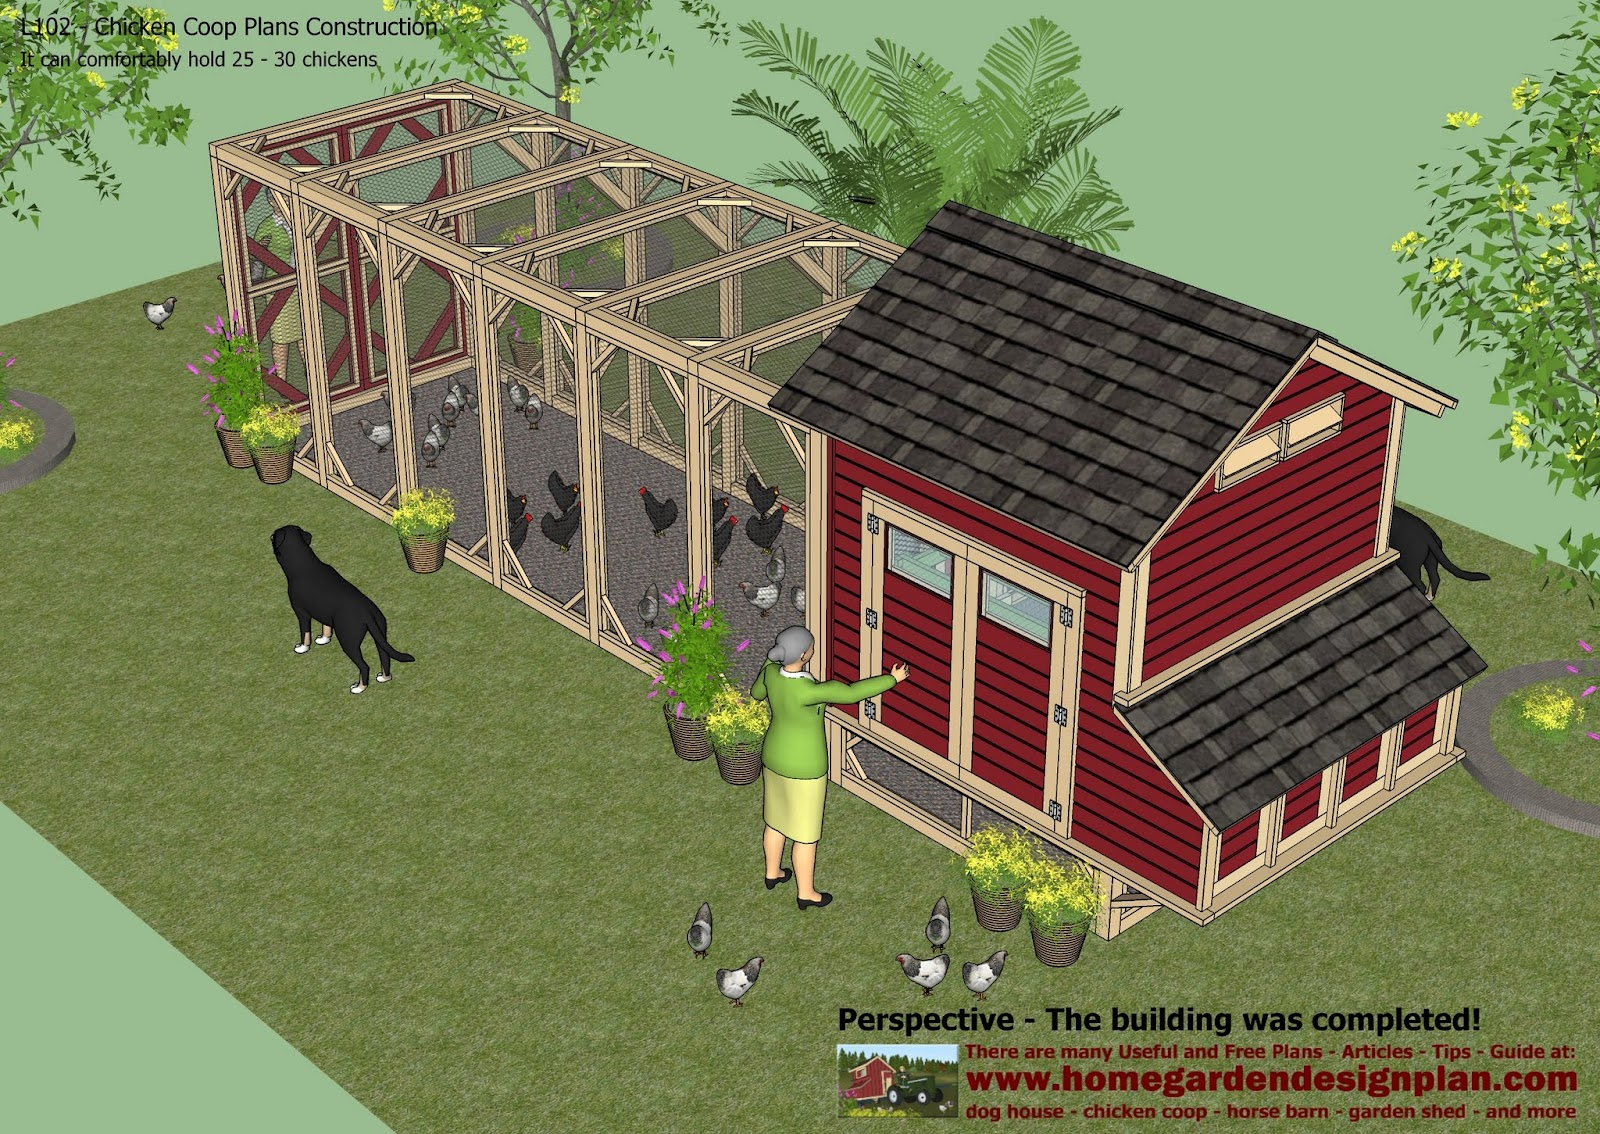 Sntila L102 Chicken Coop Plans Construction Chicken Coop